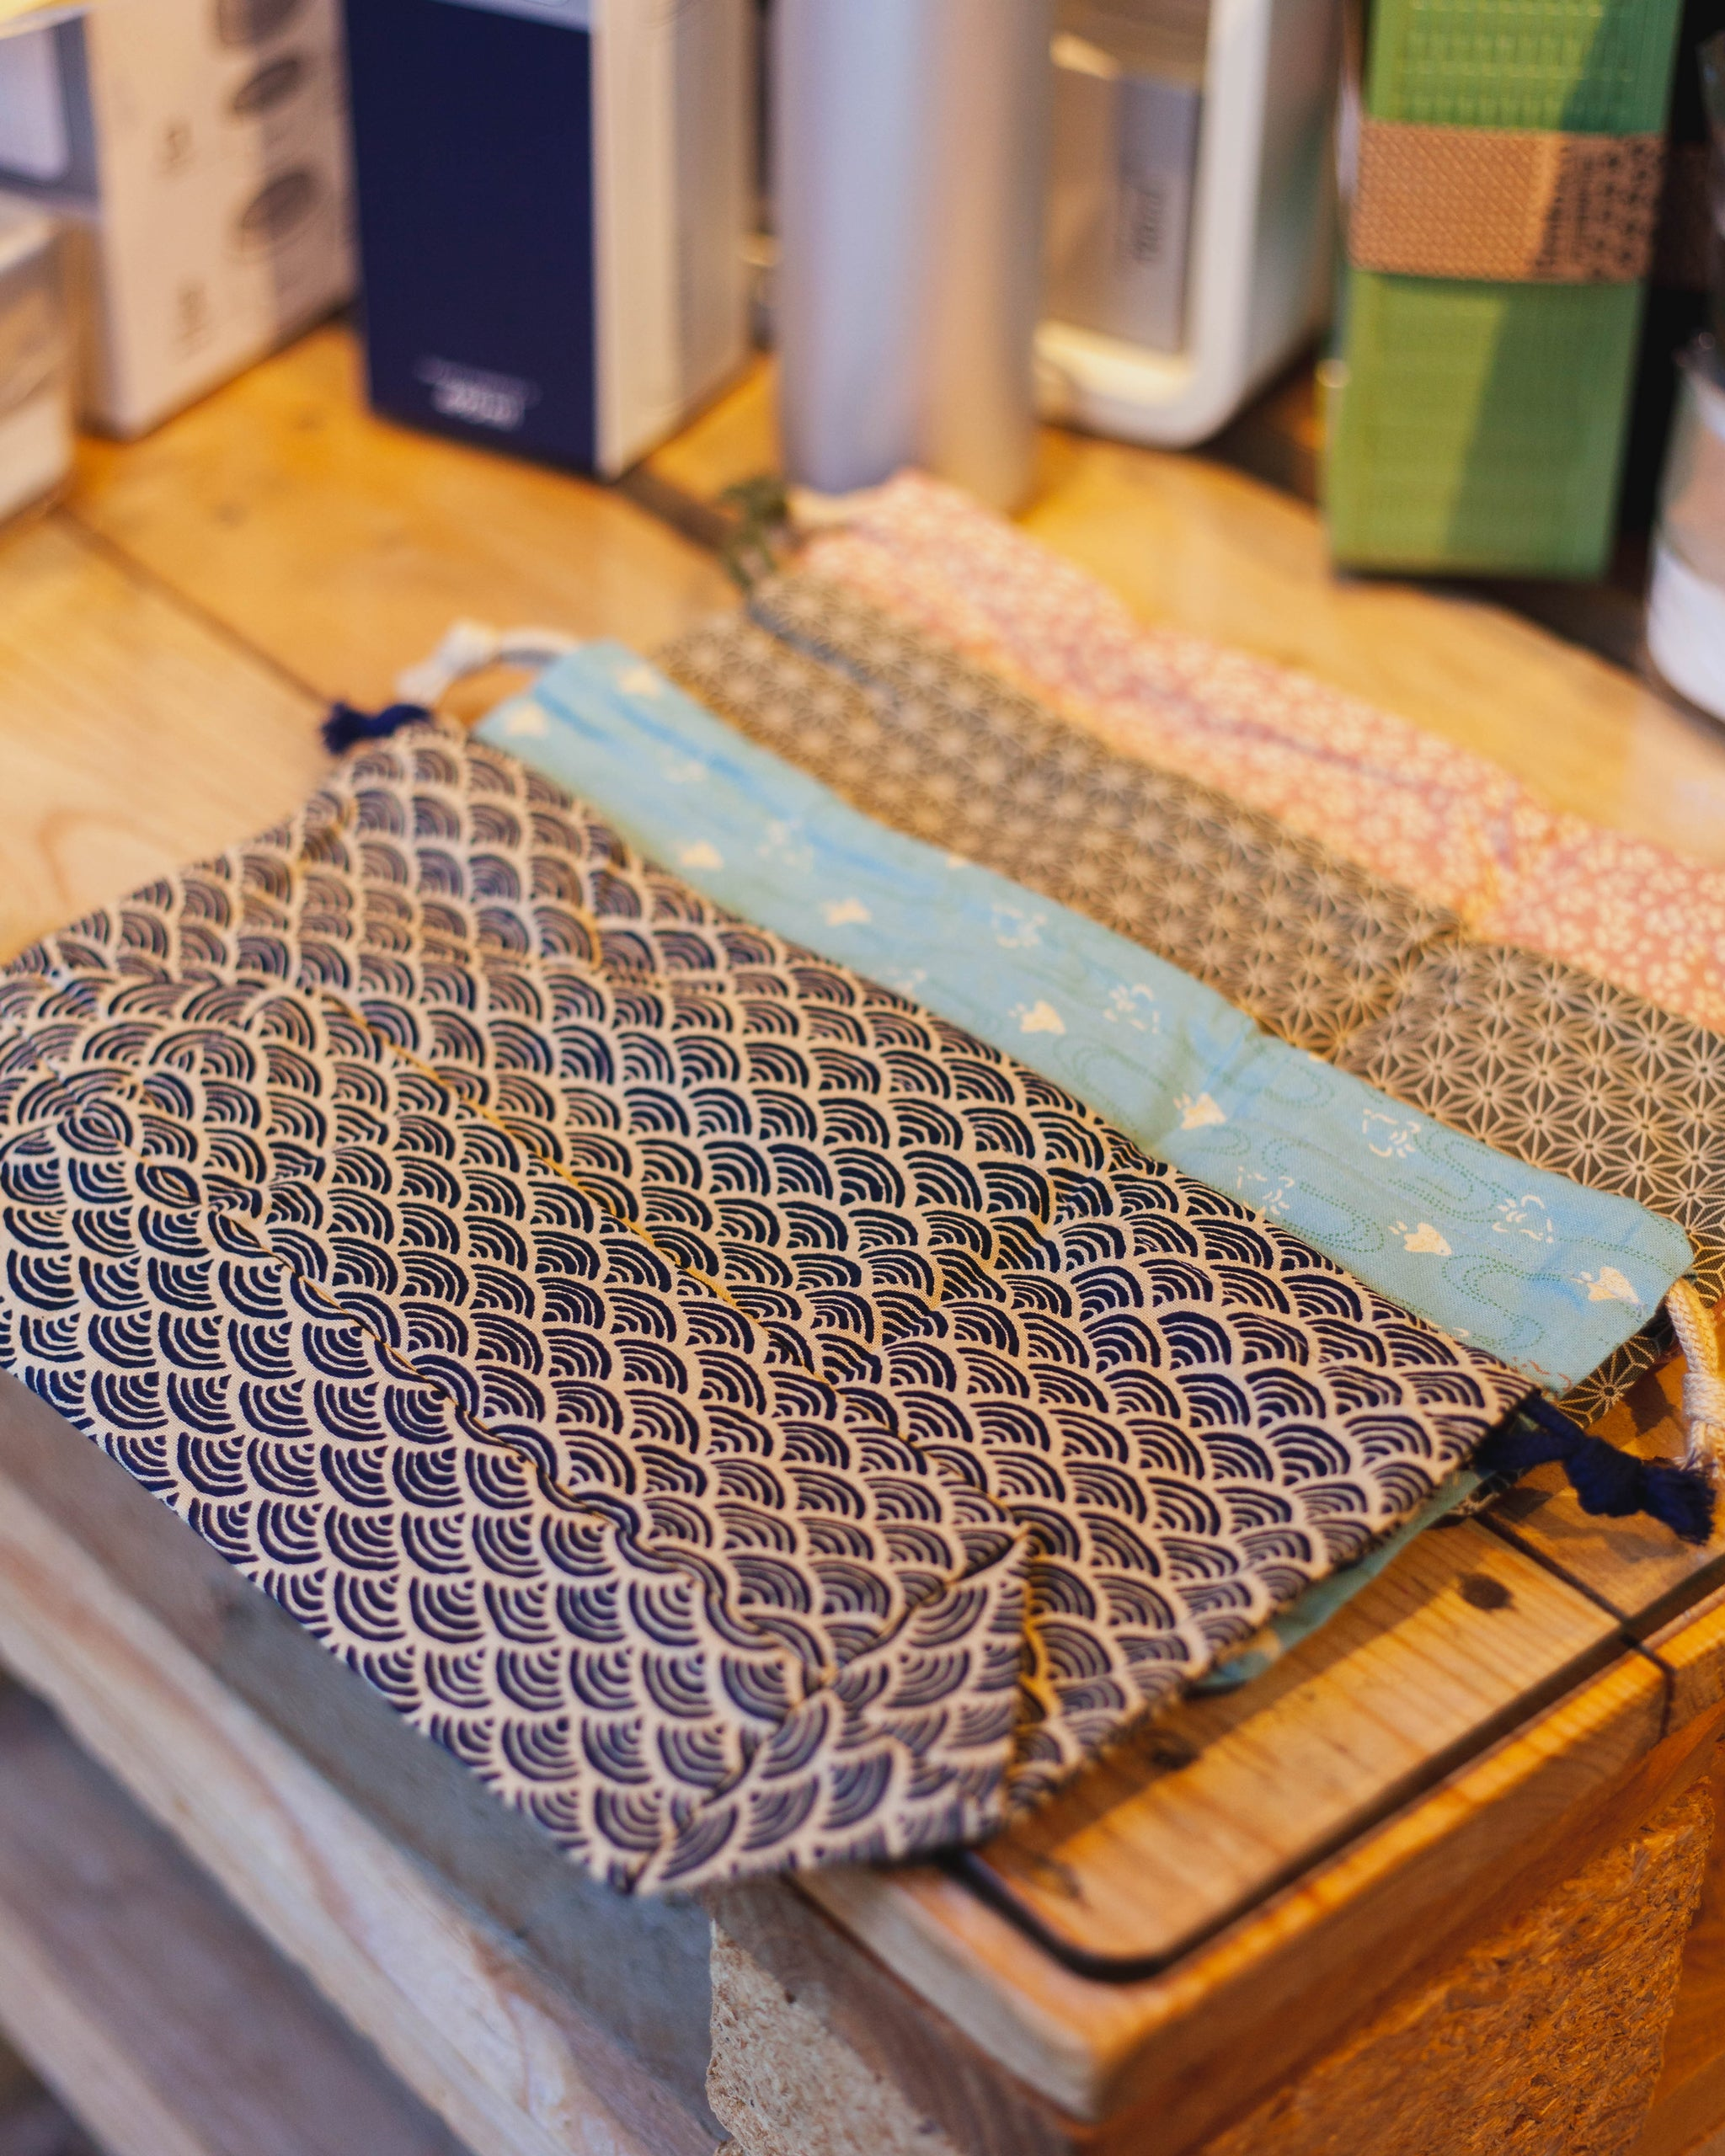 Wafu Cloth Bag | Ocean Wave by Hakoya - Bento&co Japanese Bento Lunch Boxes and Kitchenware Specialists